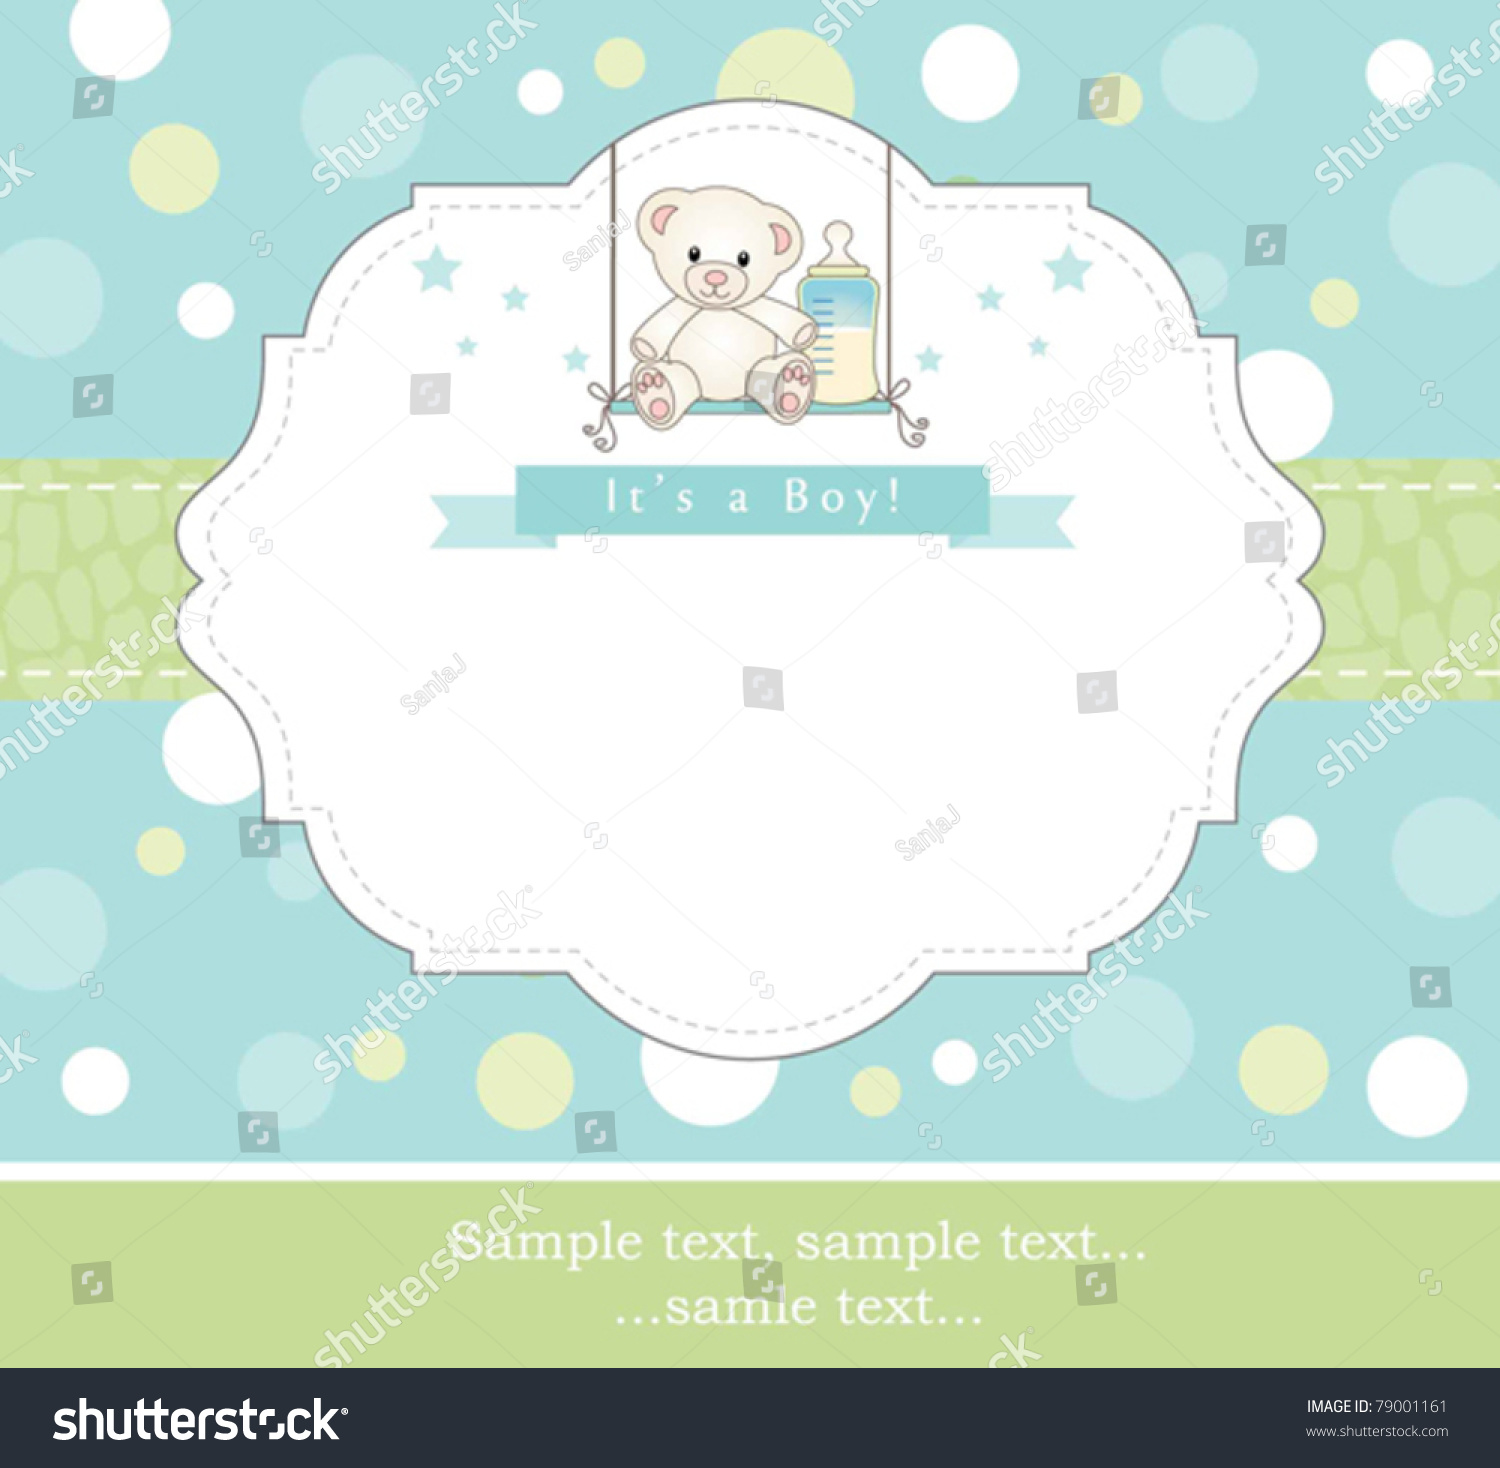 New Baby Boy Shower Invitation Stock Vector 79001161 - Shutterstock